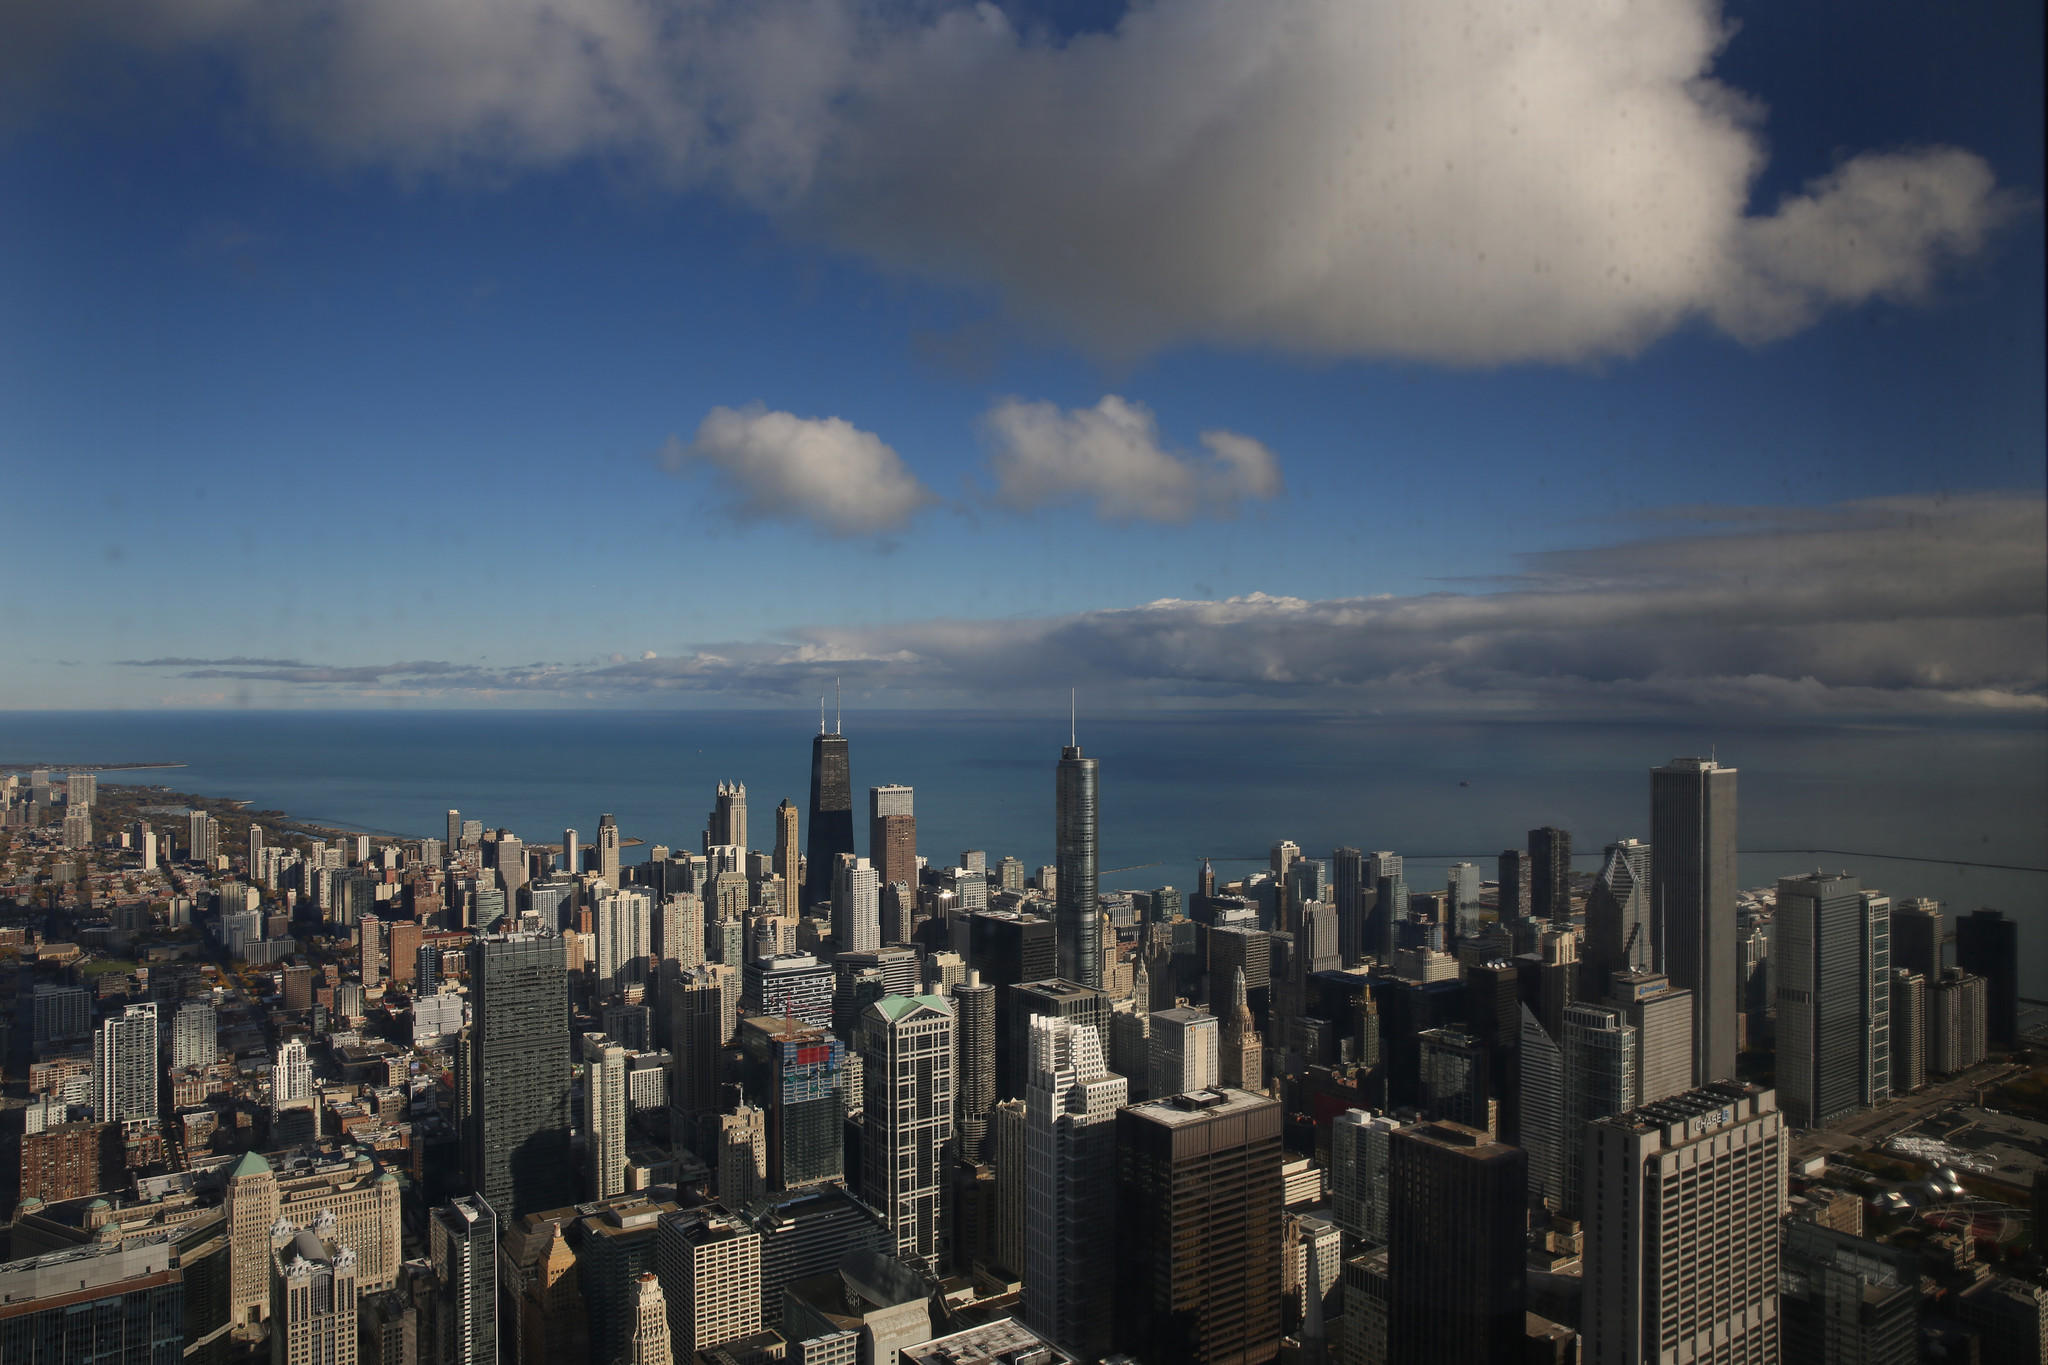 Chicago from the 103rd floor of the Willis Tower.